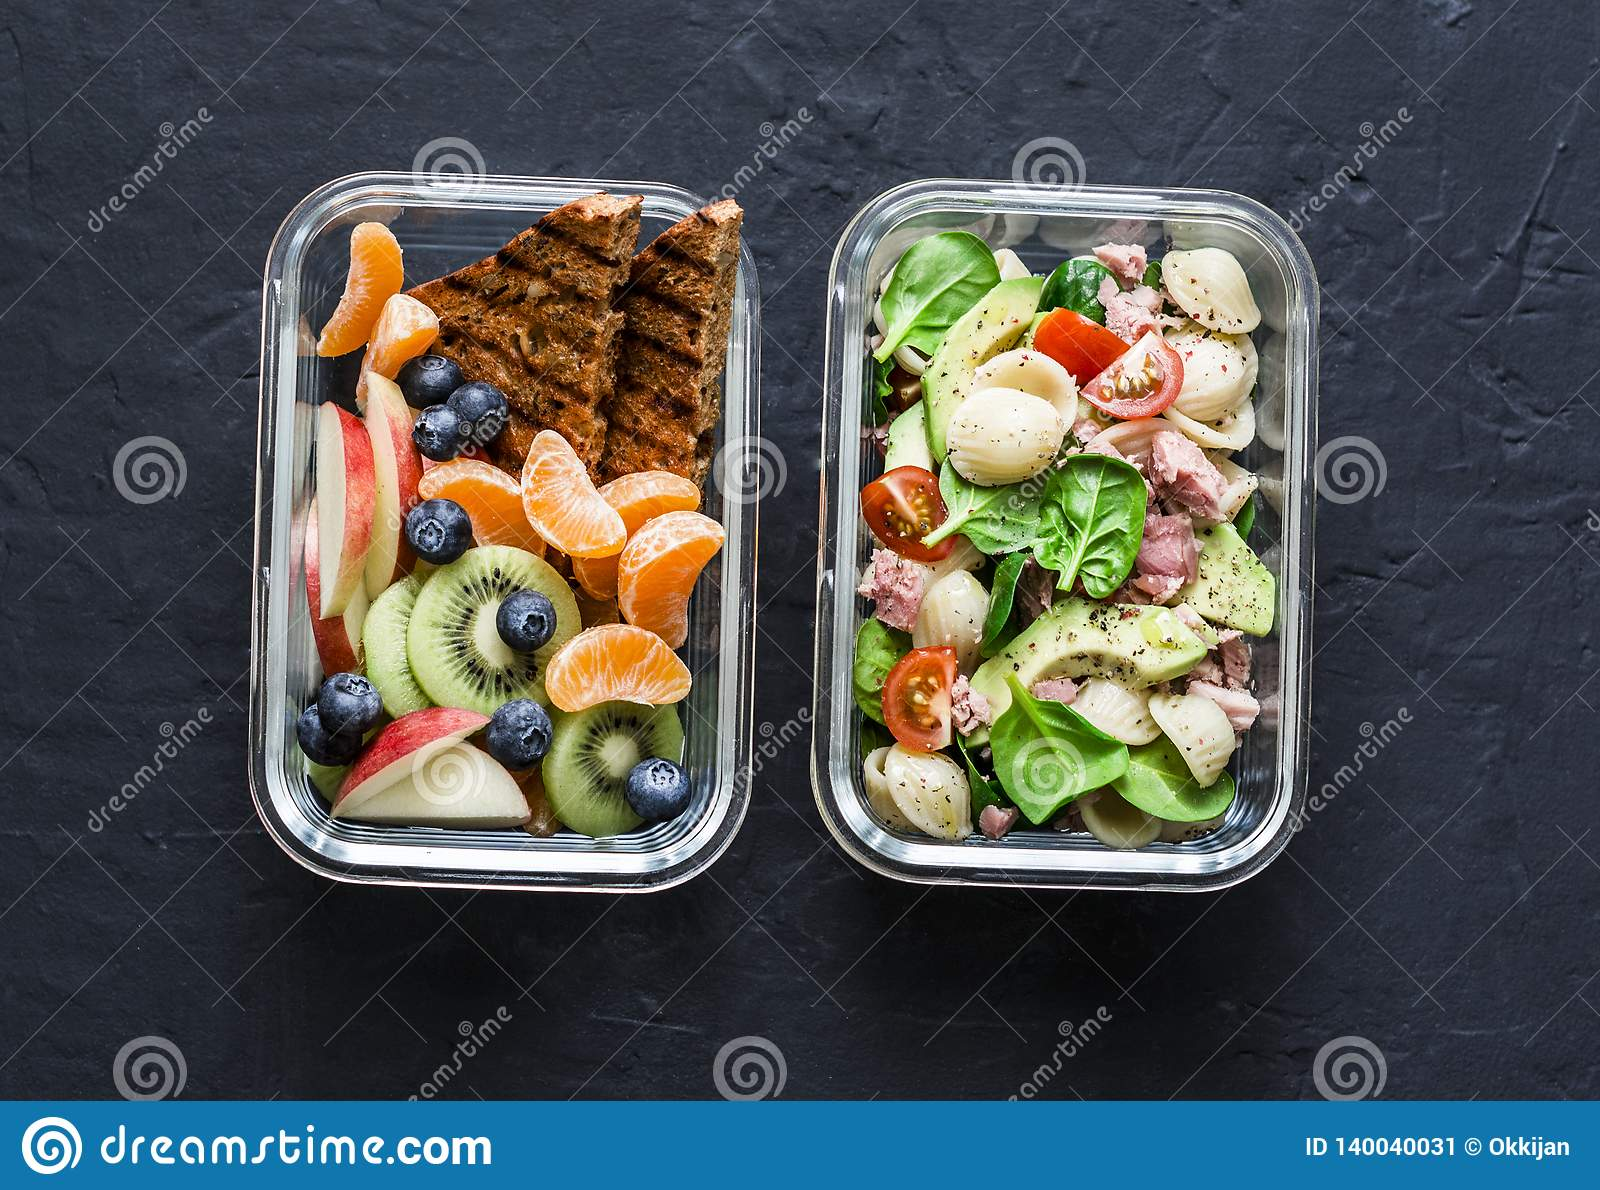 Office sweet and savory food lunch box. Pasta, tuna, spinach, avocado salad and fruit lunch box on dark